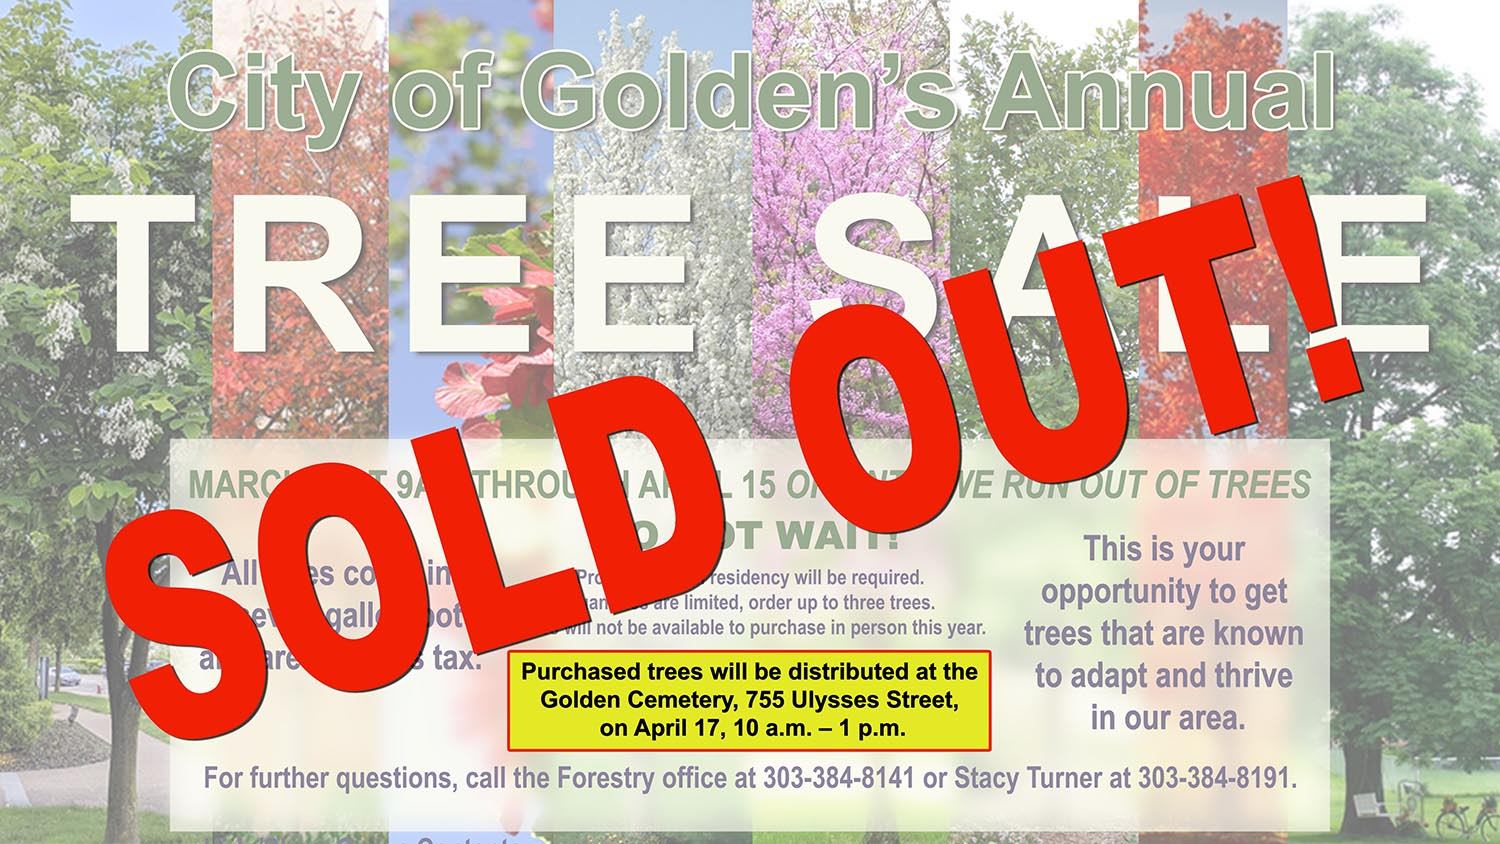 Tree Sale - all trees are Sold Out